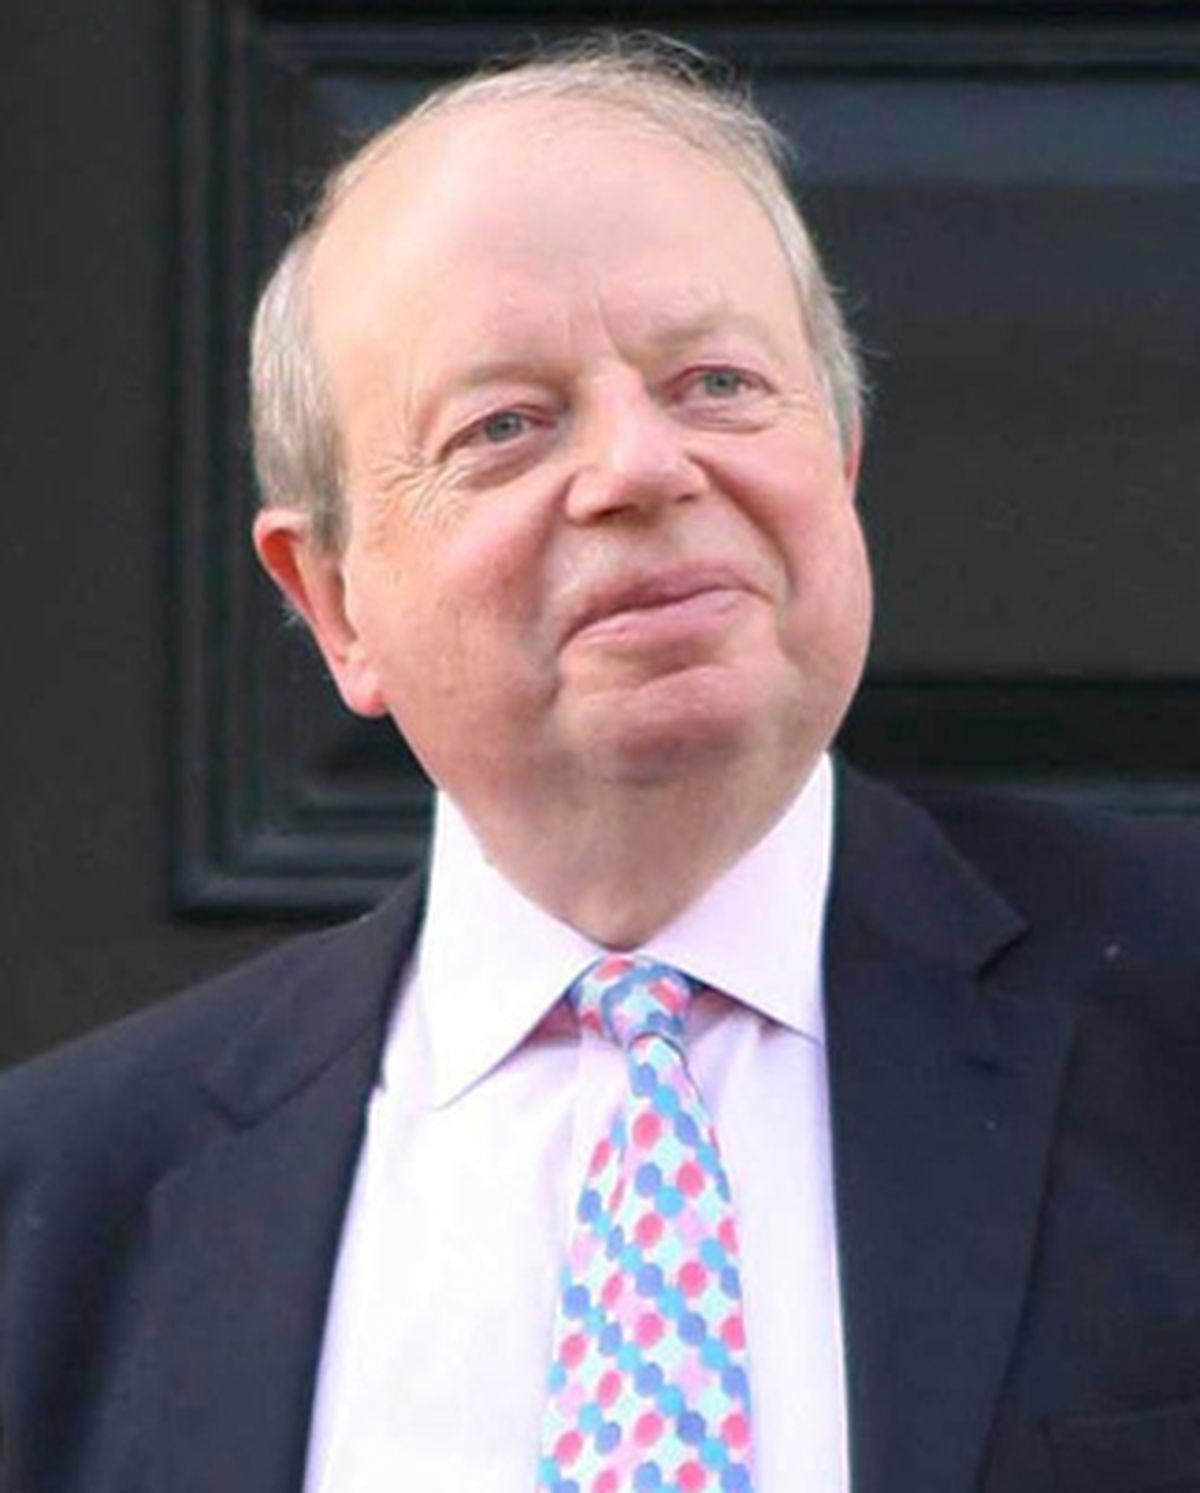 John Sergeant leaves his home in west London, after announcing that he had quit Strictly Come Dancing.